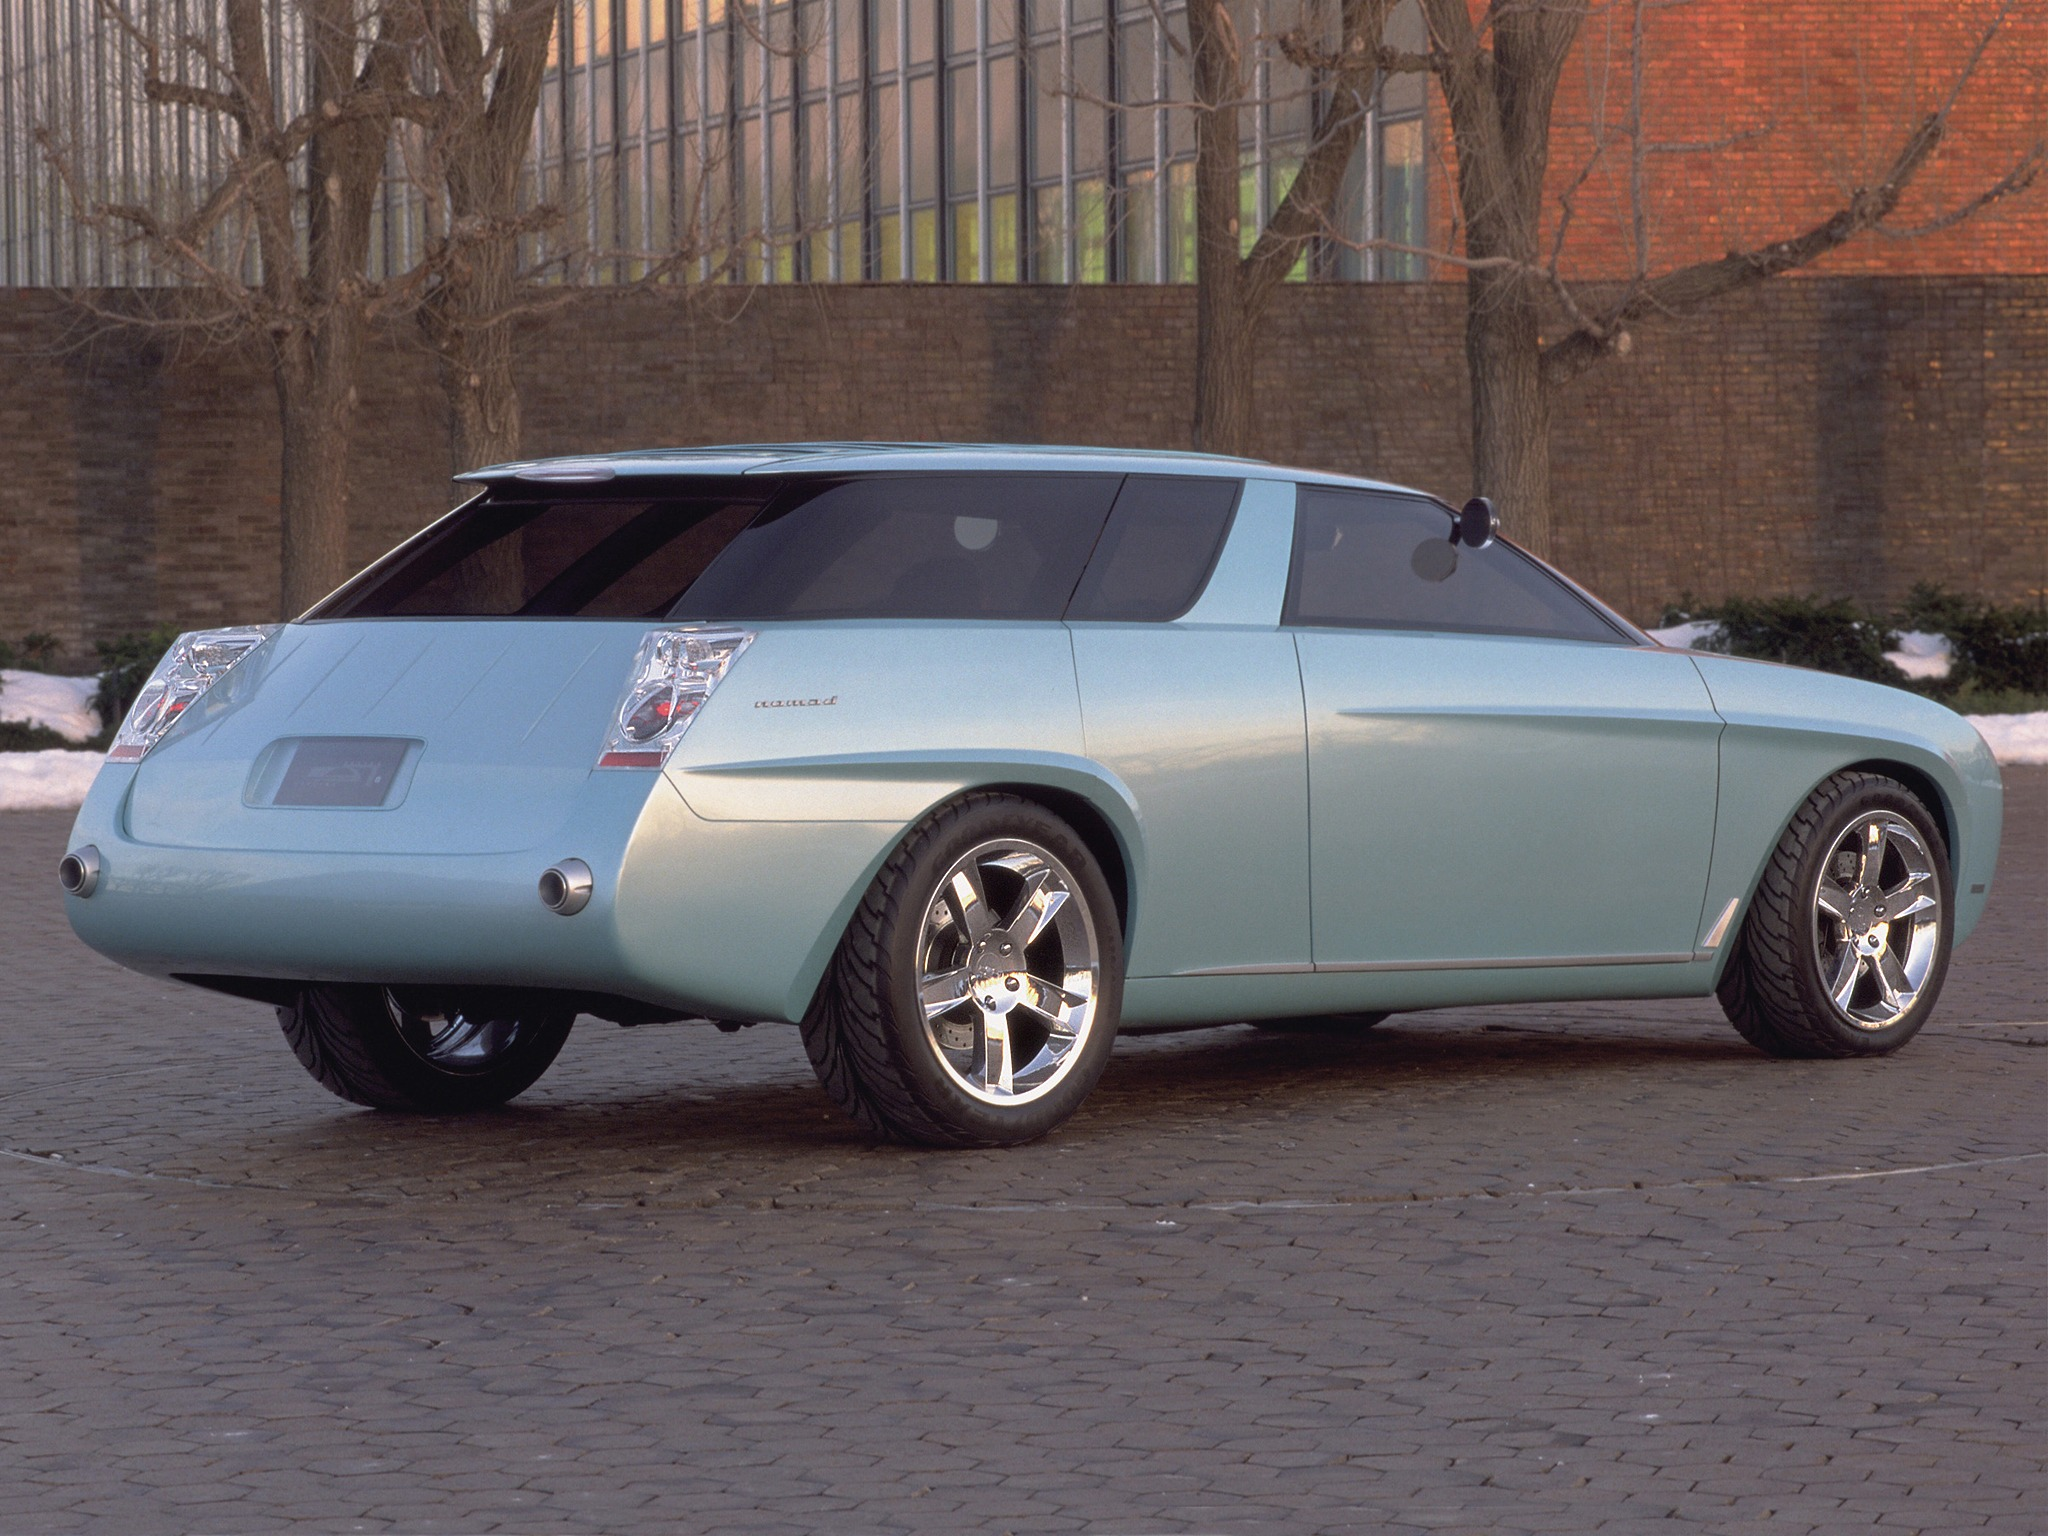 Chevrolet Nomad Concept (1999) – Old Concept Cars